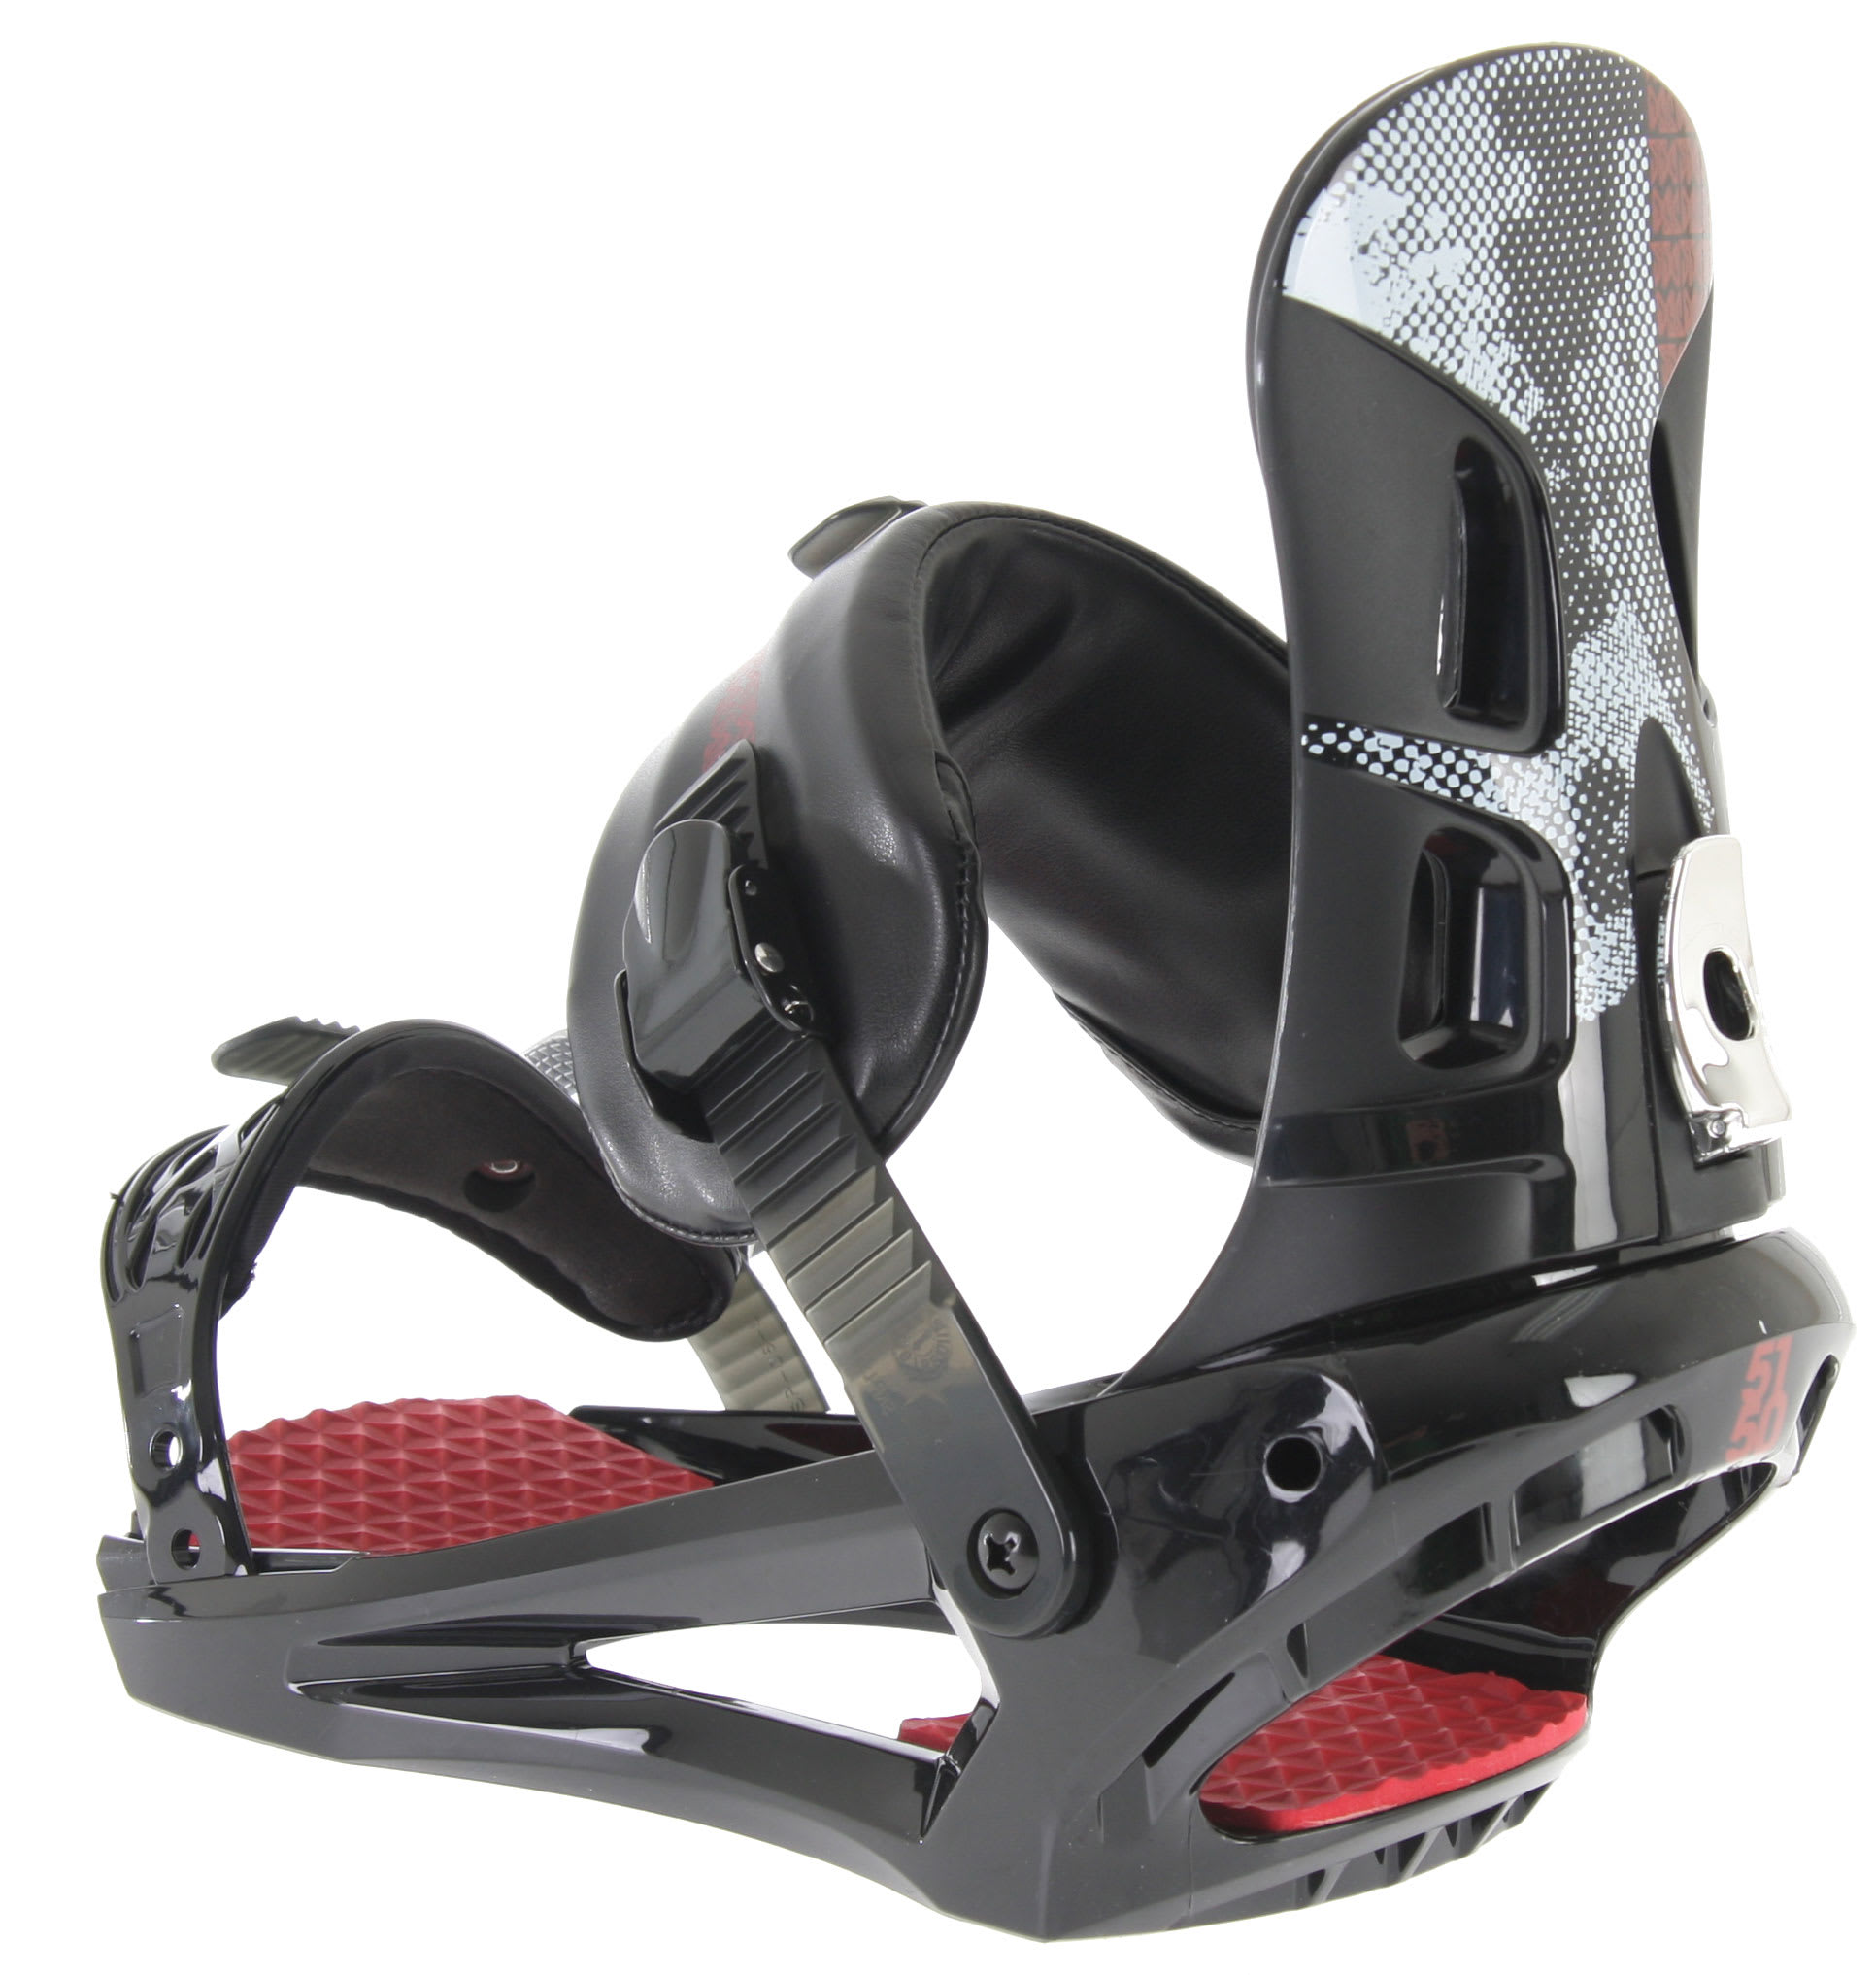 On Sale 5150 Exo Snowboard Bindings Up To 70% Off